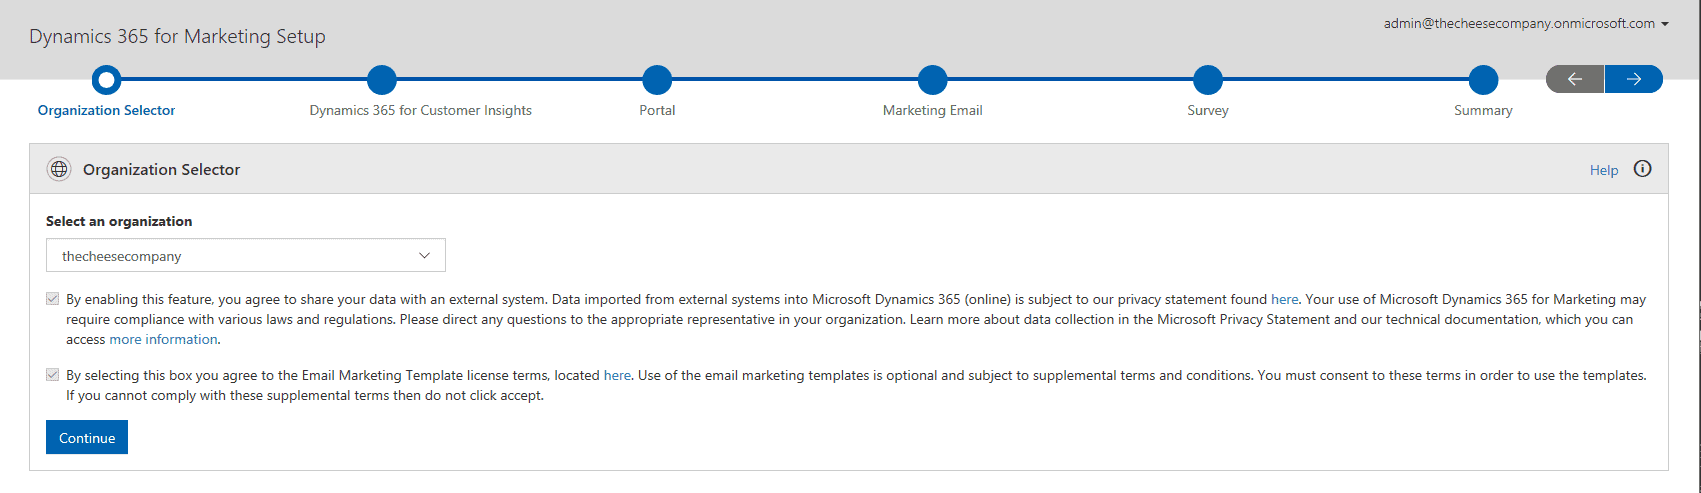 Dynamics 365 for Marketing First Run Experience | Rocket CRM